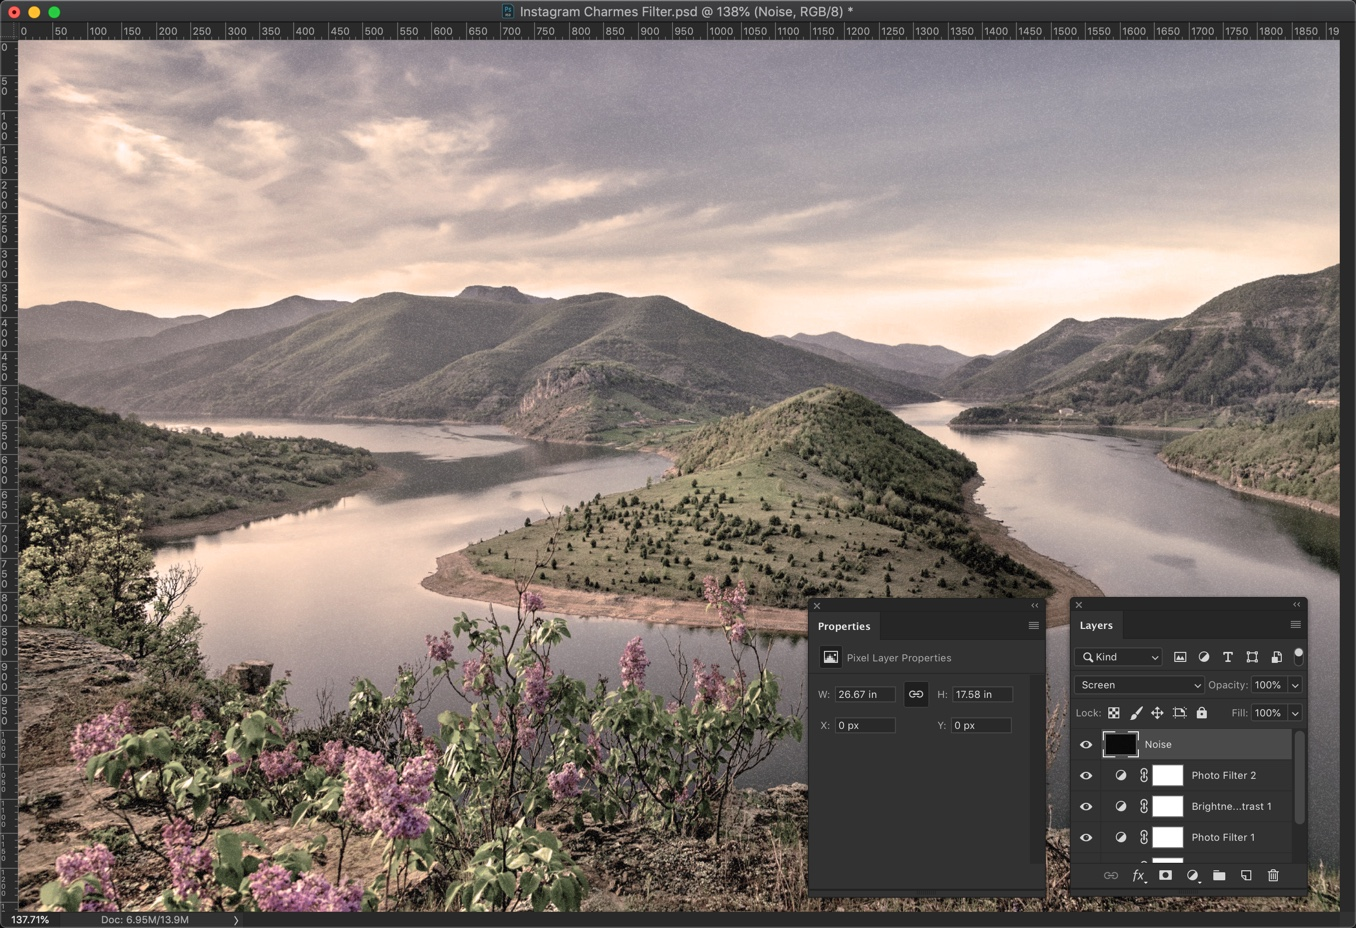 15 - Create Instagram Charmes Filter in Photoshop [Action Included]